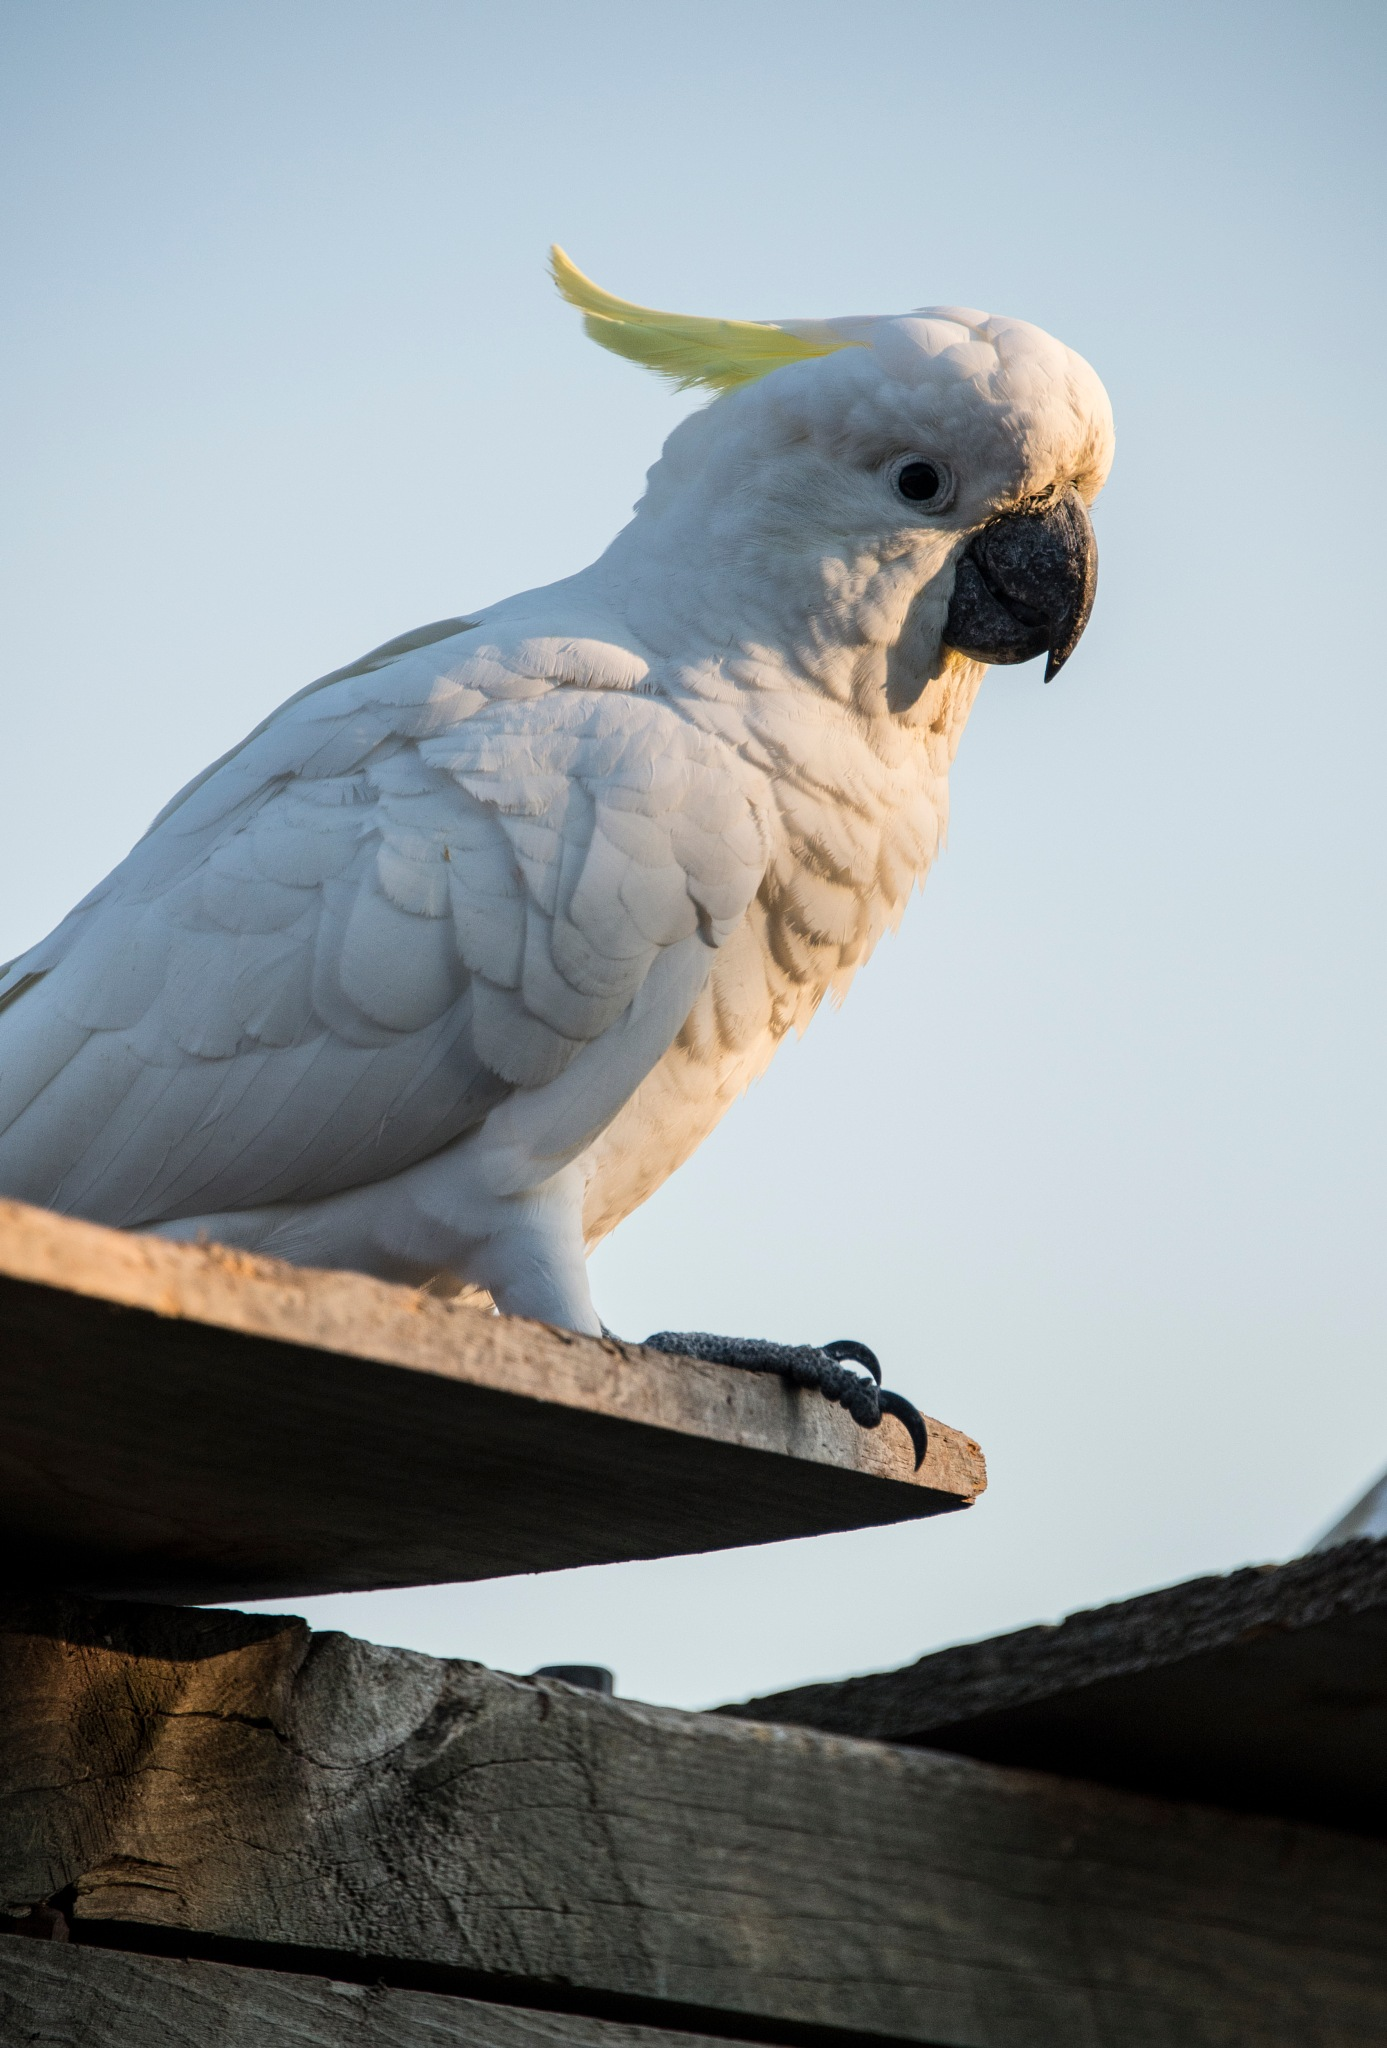 Cockatoo in my Backyard by Graham Levi